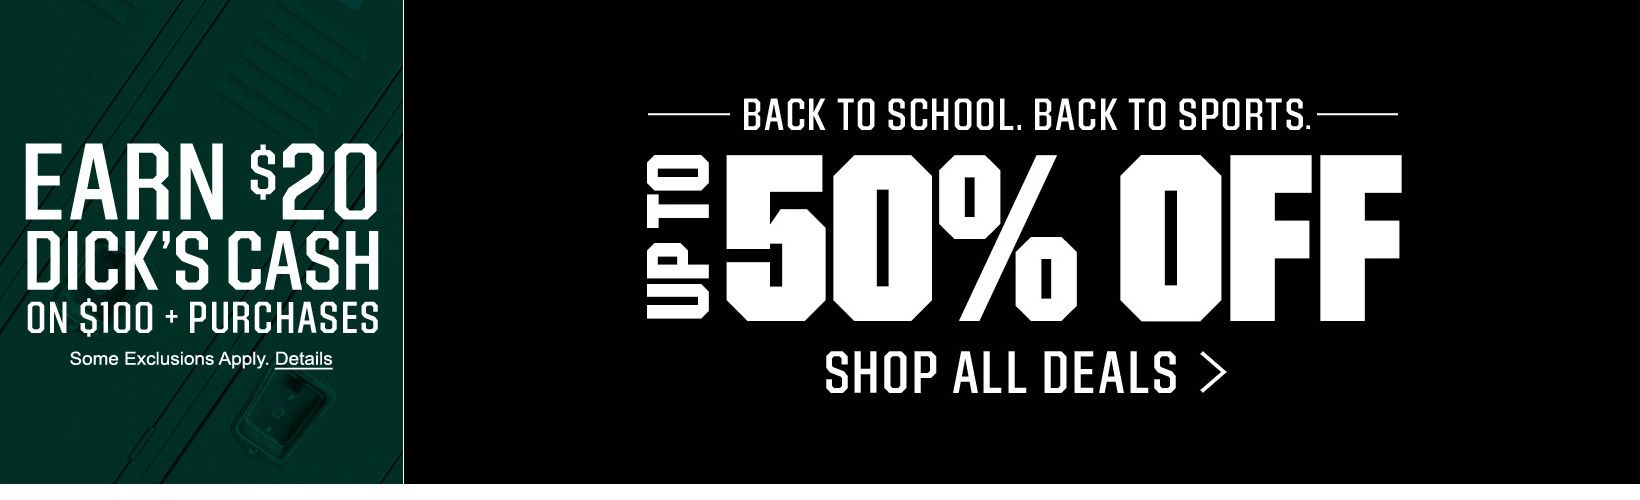 Back To School. Back to Sports. - Up to 50% Off – Shop All Deals